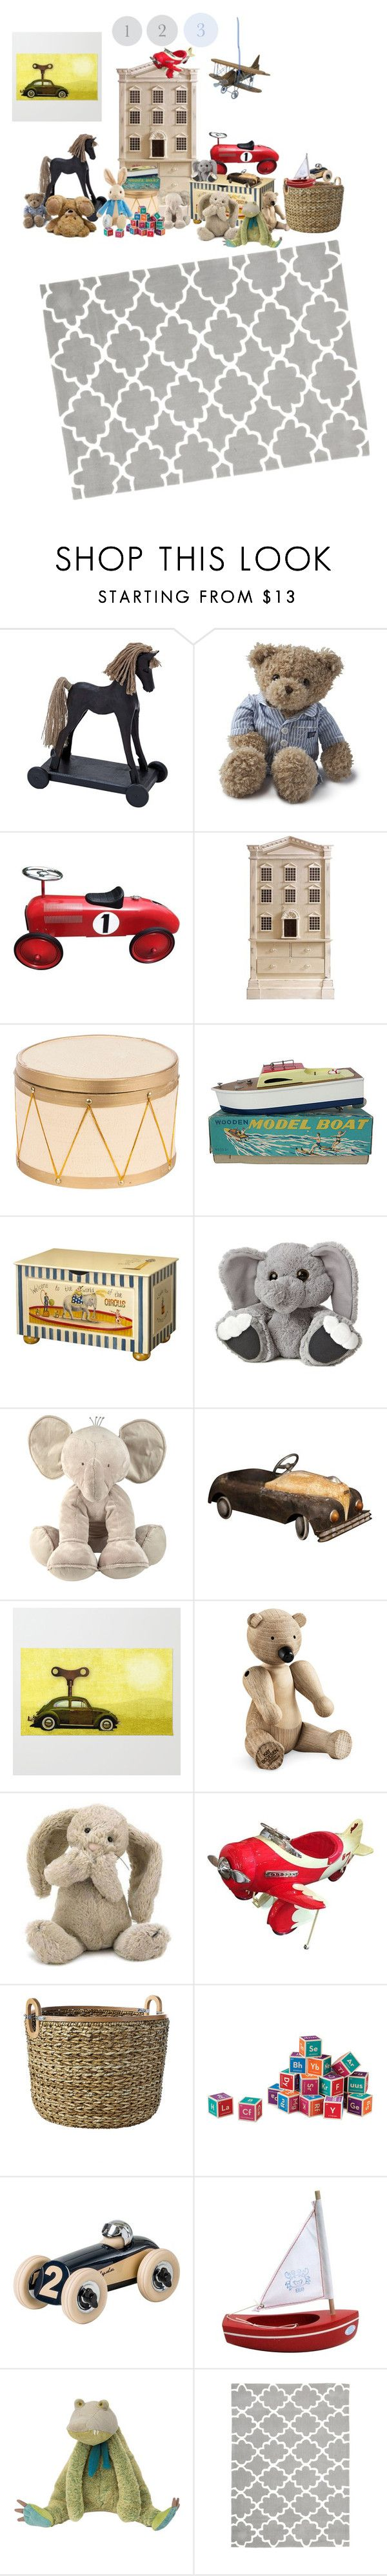 """""""Boys room"""" by dee-herrick ❤ liked on Polyvore featuring interior, interiors, interior design, home, home decor, interior decorating, Universal Lighting and Decor, Lexington, Andrew Martin and Dot & Bo"""